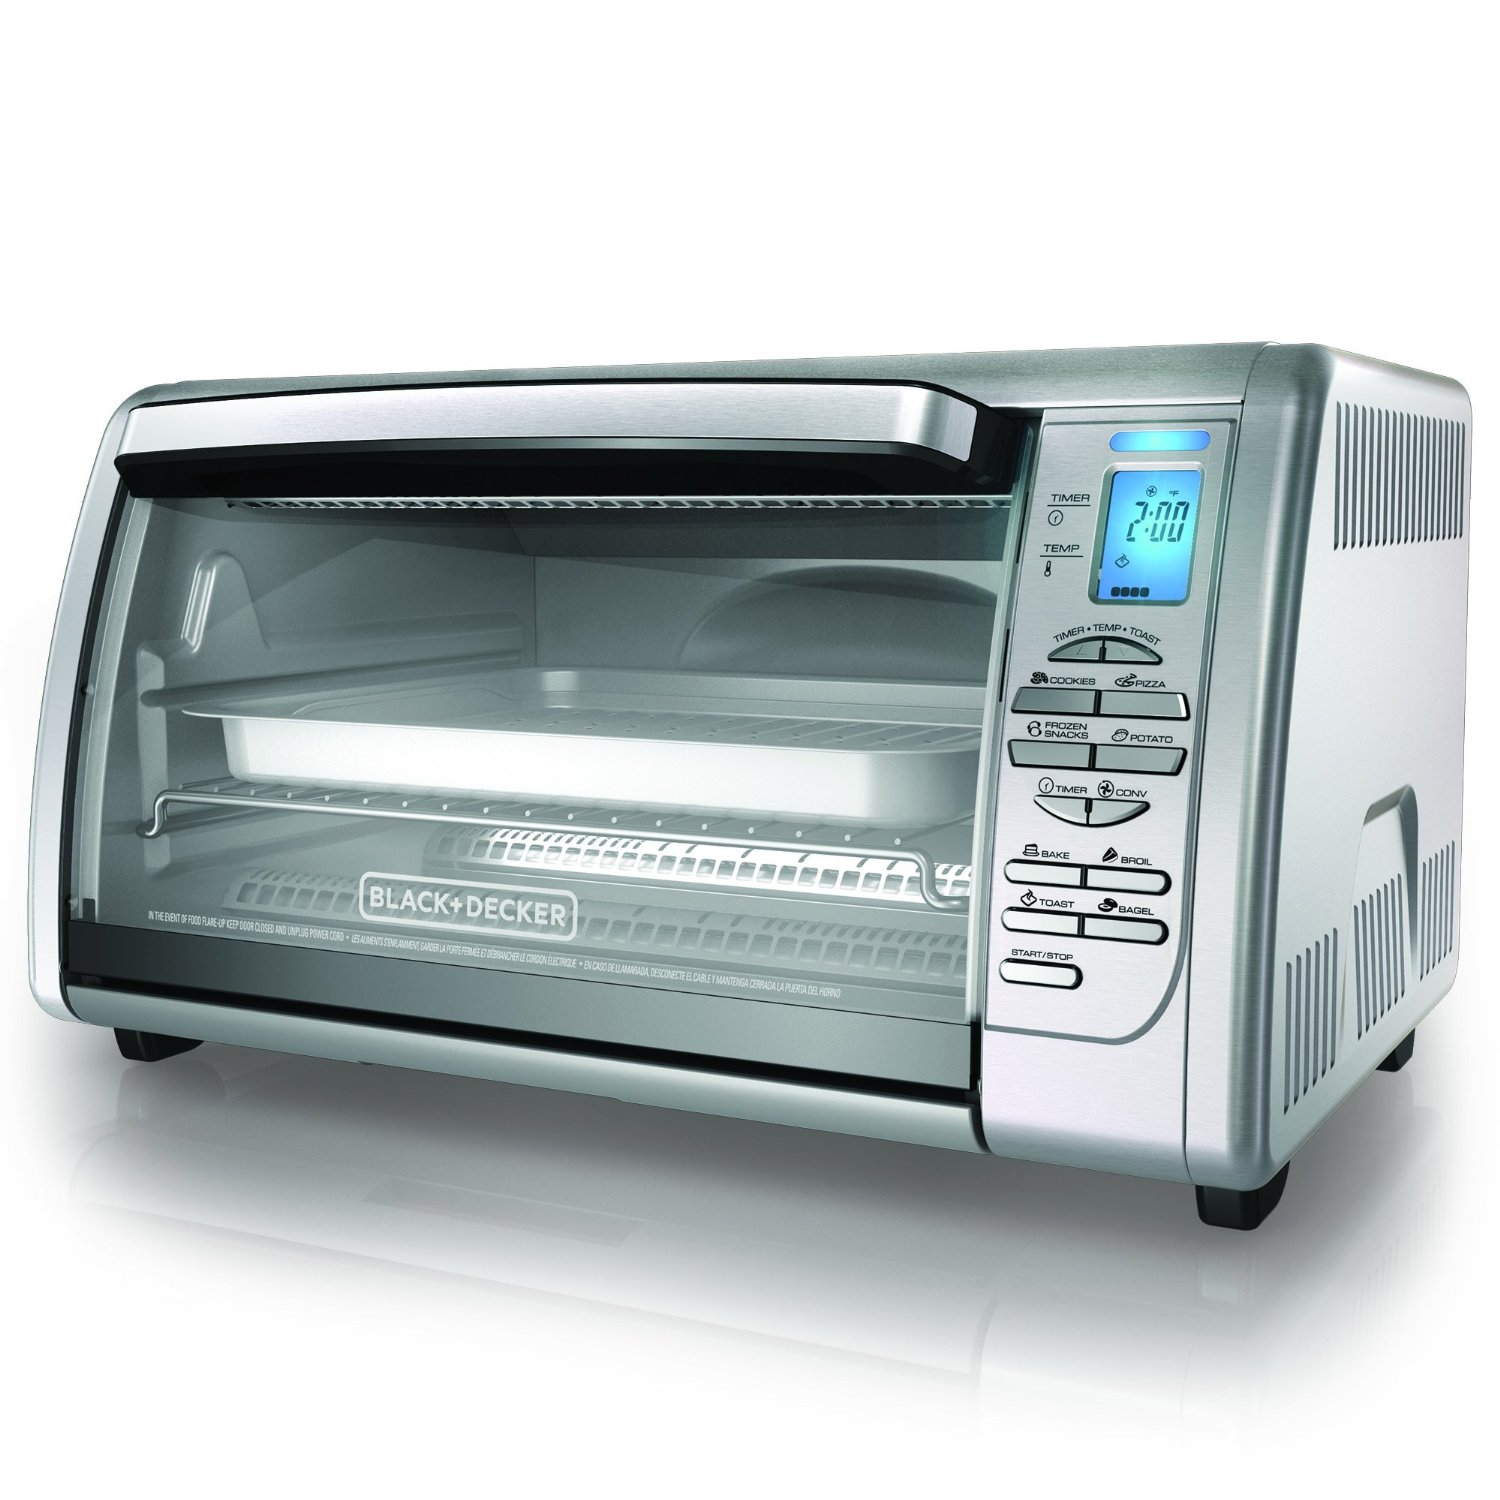 Top Countertop Convection Oven Reviews The Best of